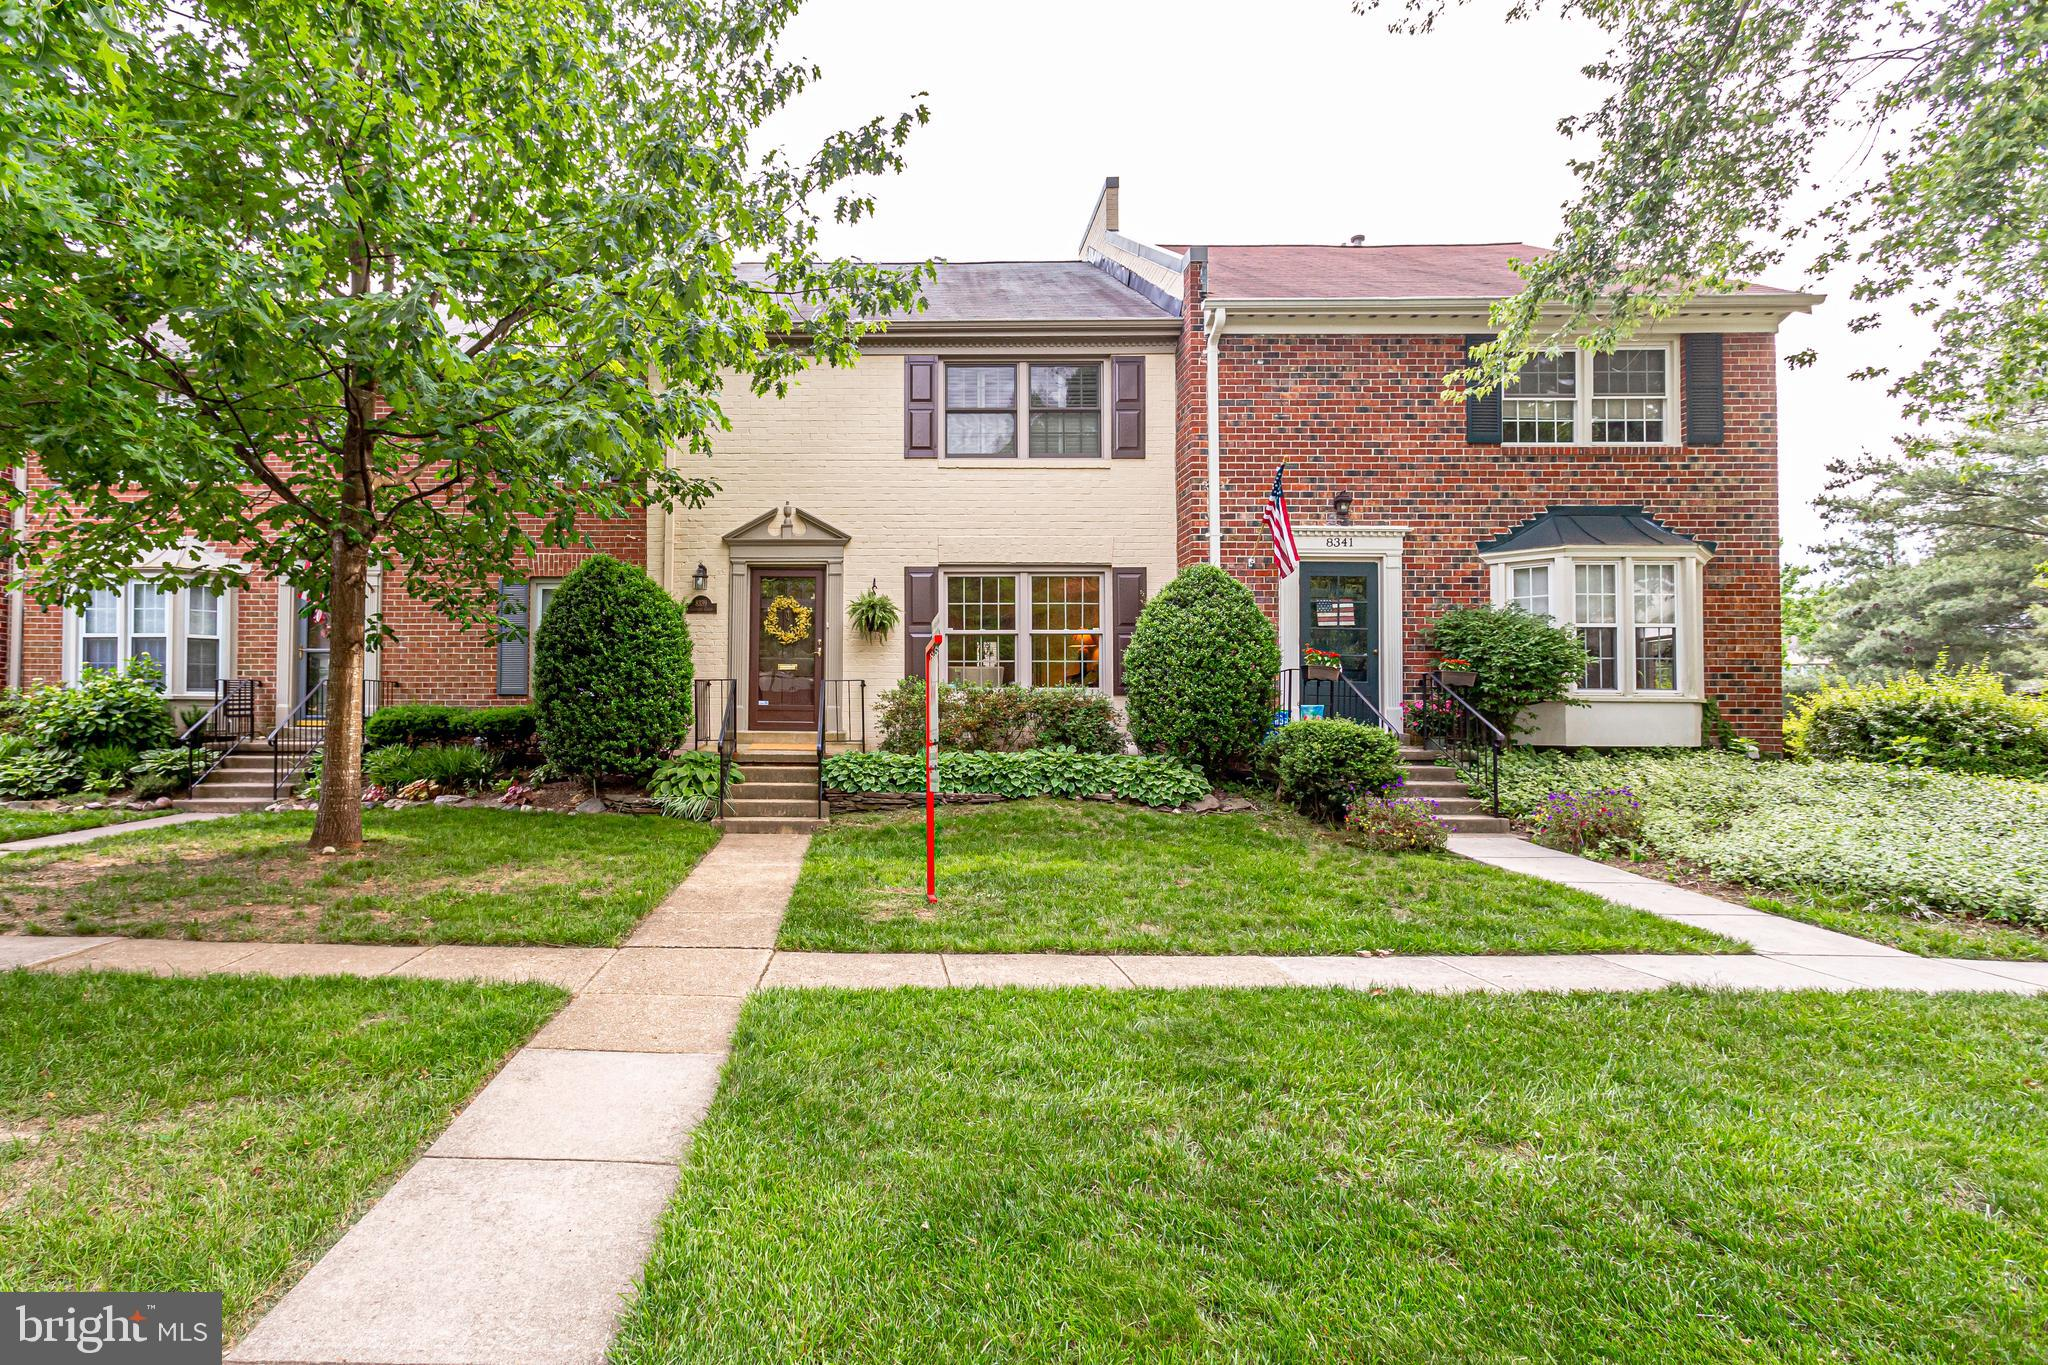 A Charlestown beauty! All brick 3BR/2.55BA townhouse w/ walkout basement! Elegant curved staircase entrance! Hardwood floors! Formal living & dining rooms! Fully renovated granite kitchen! Master suite w/ walk-in closet & frameless glass shower! Finished walk-out basement w/ half bath & Pella French Doors w/ roll screens, builtins & wine fridge open to private brick patio w/ hot tub! Anderson Renewal windows! Call today for your private showing!